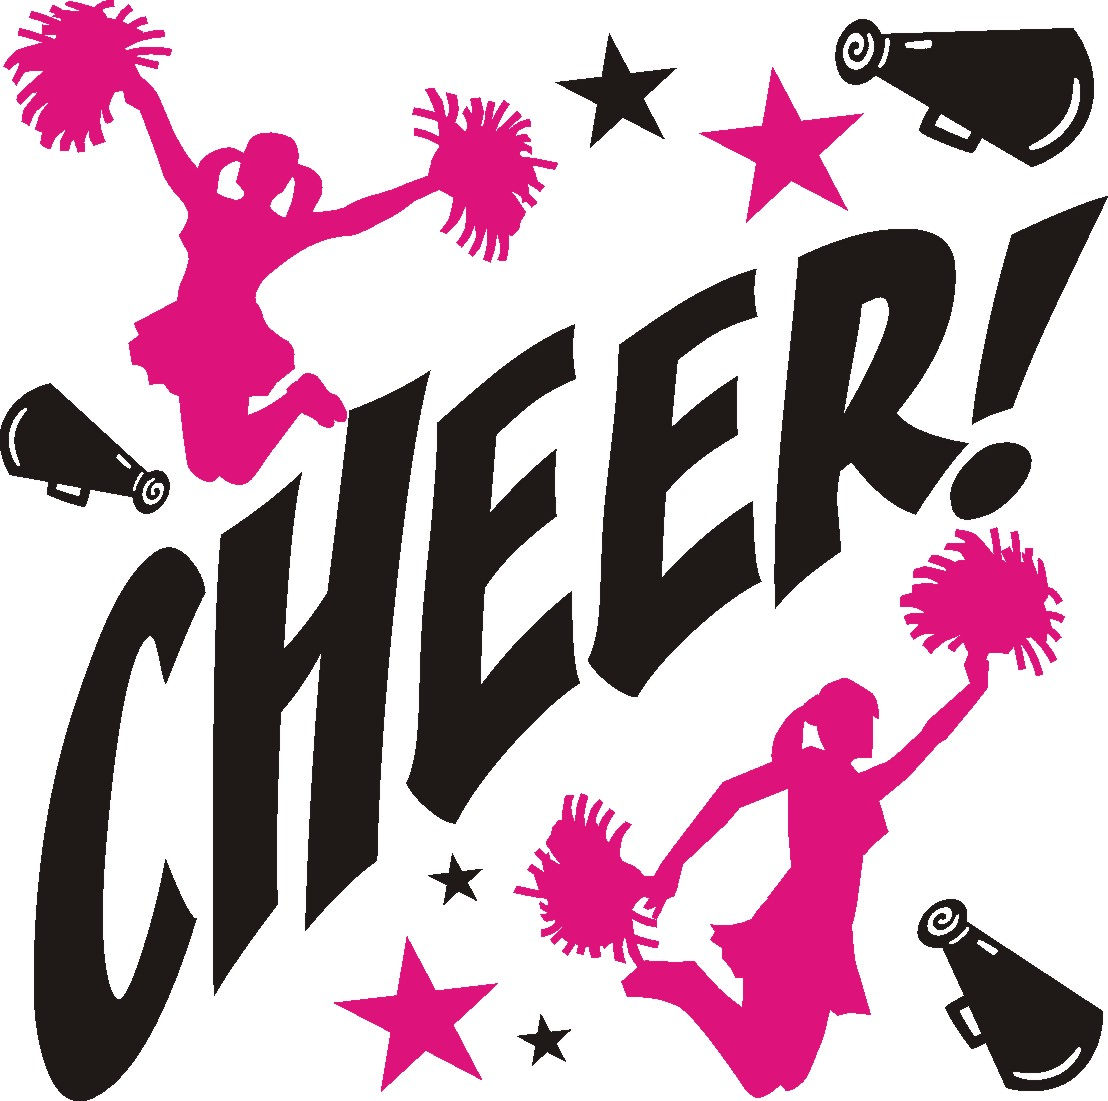 Cheerleading tryouts portal . Cheer clipart tryout